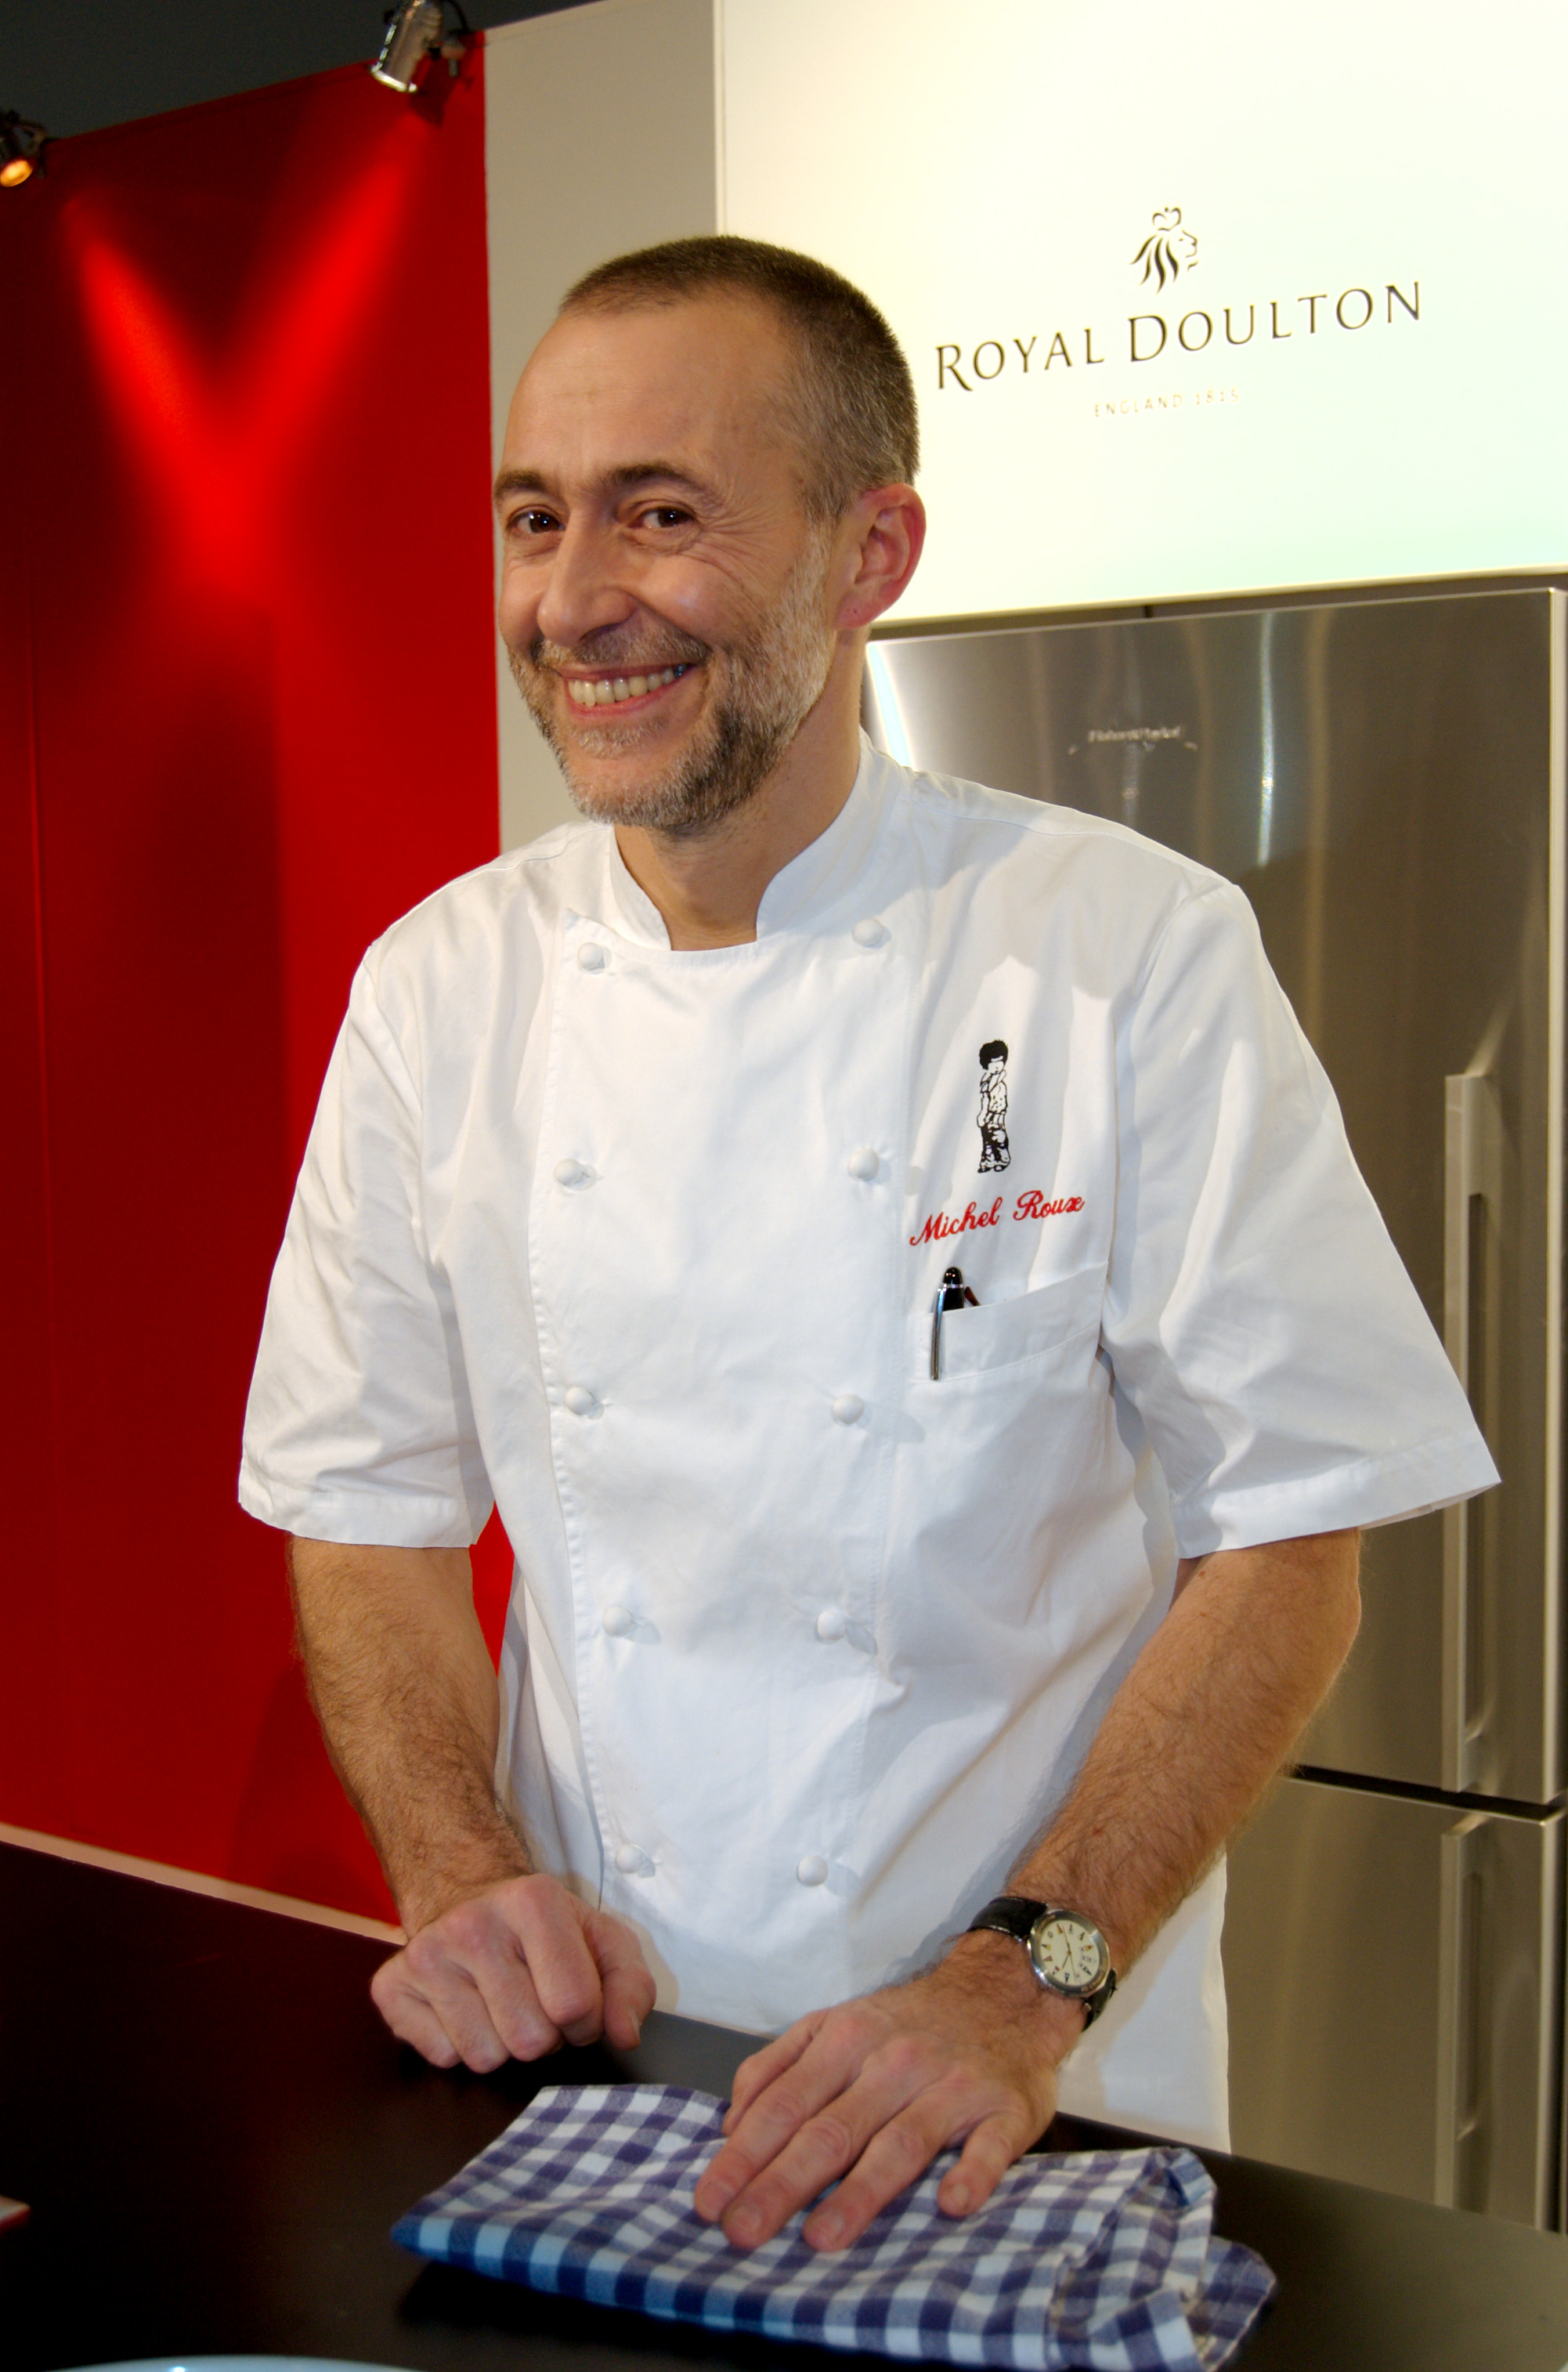 Michel Roux Jr Hidden Kitchens Recipes